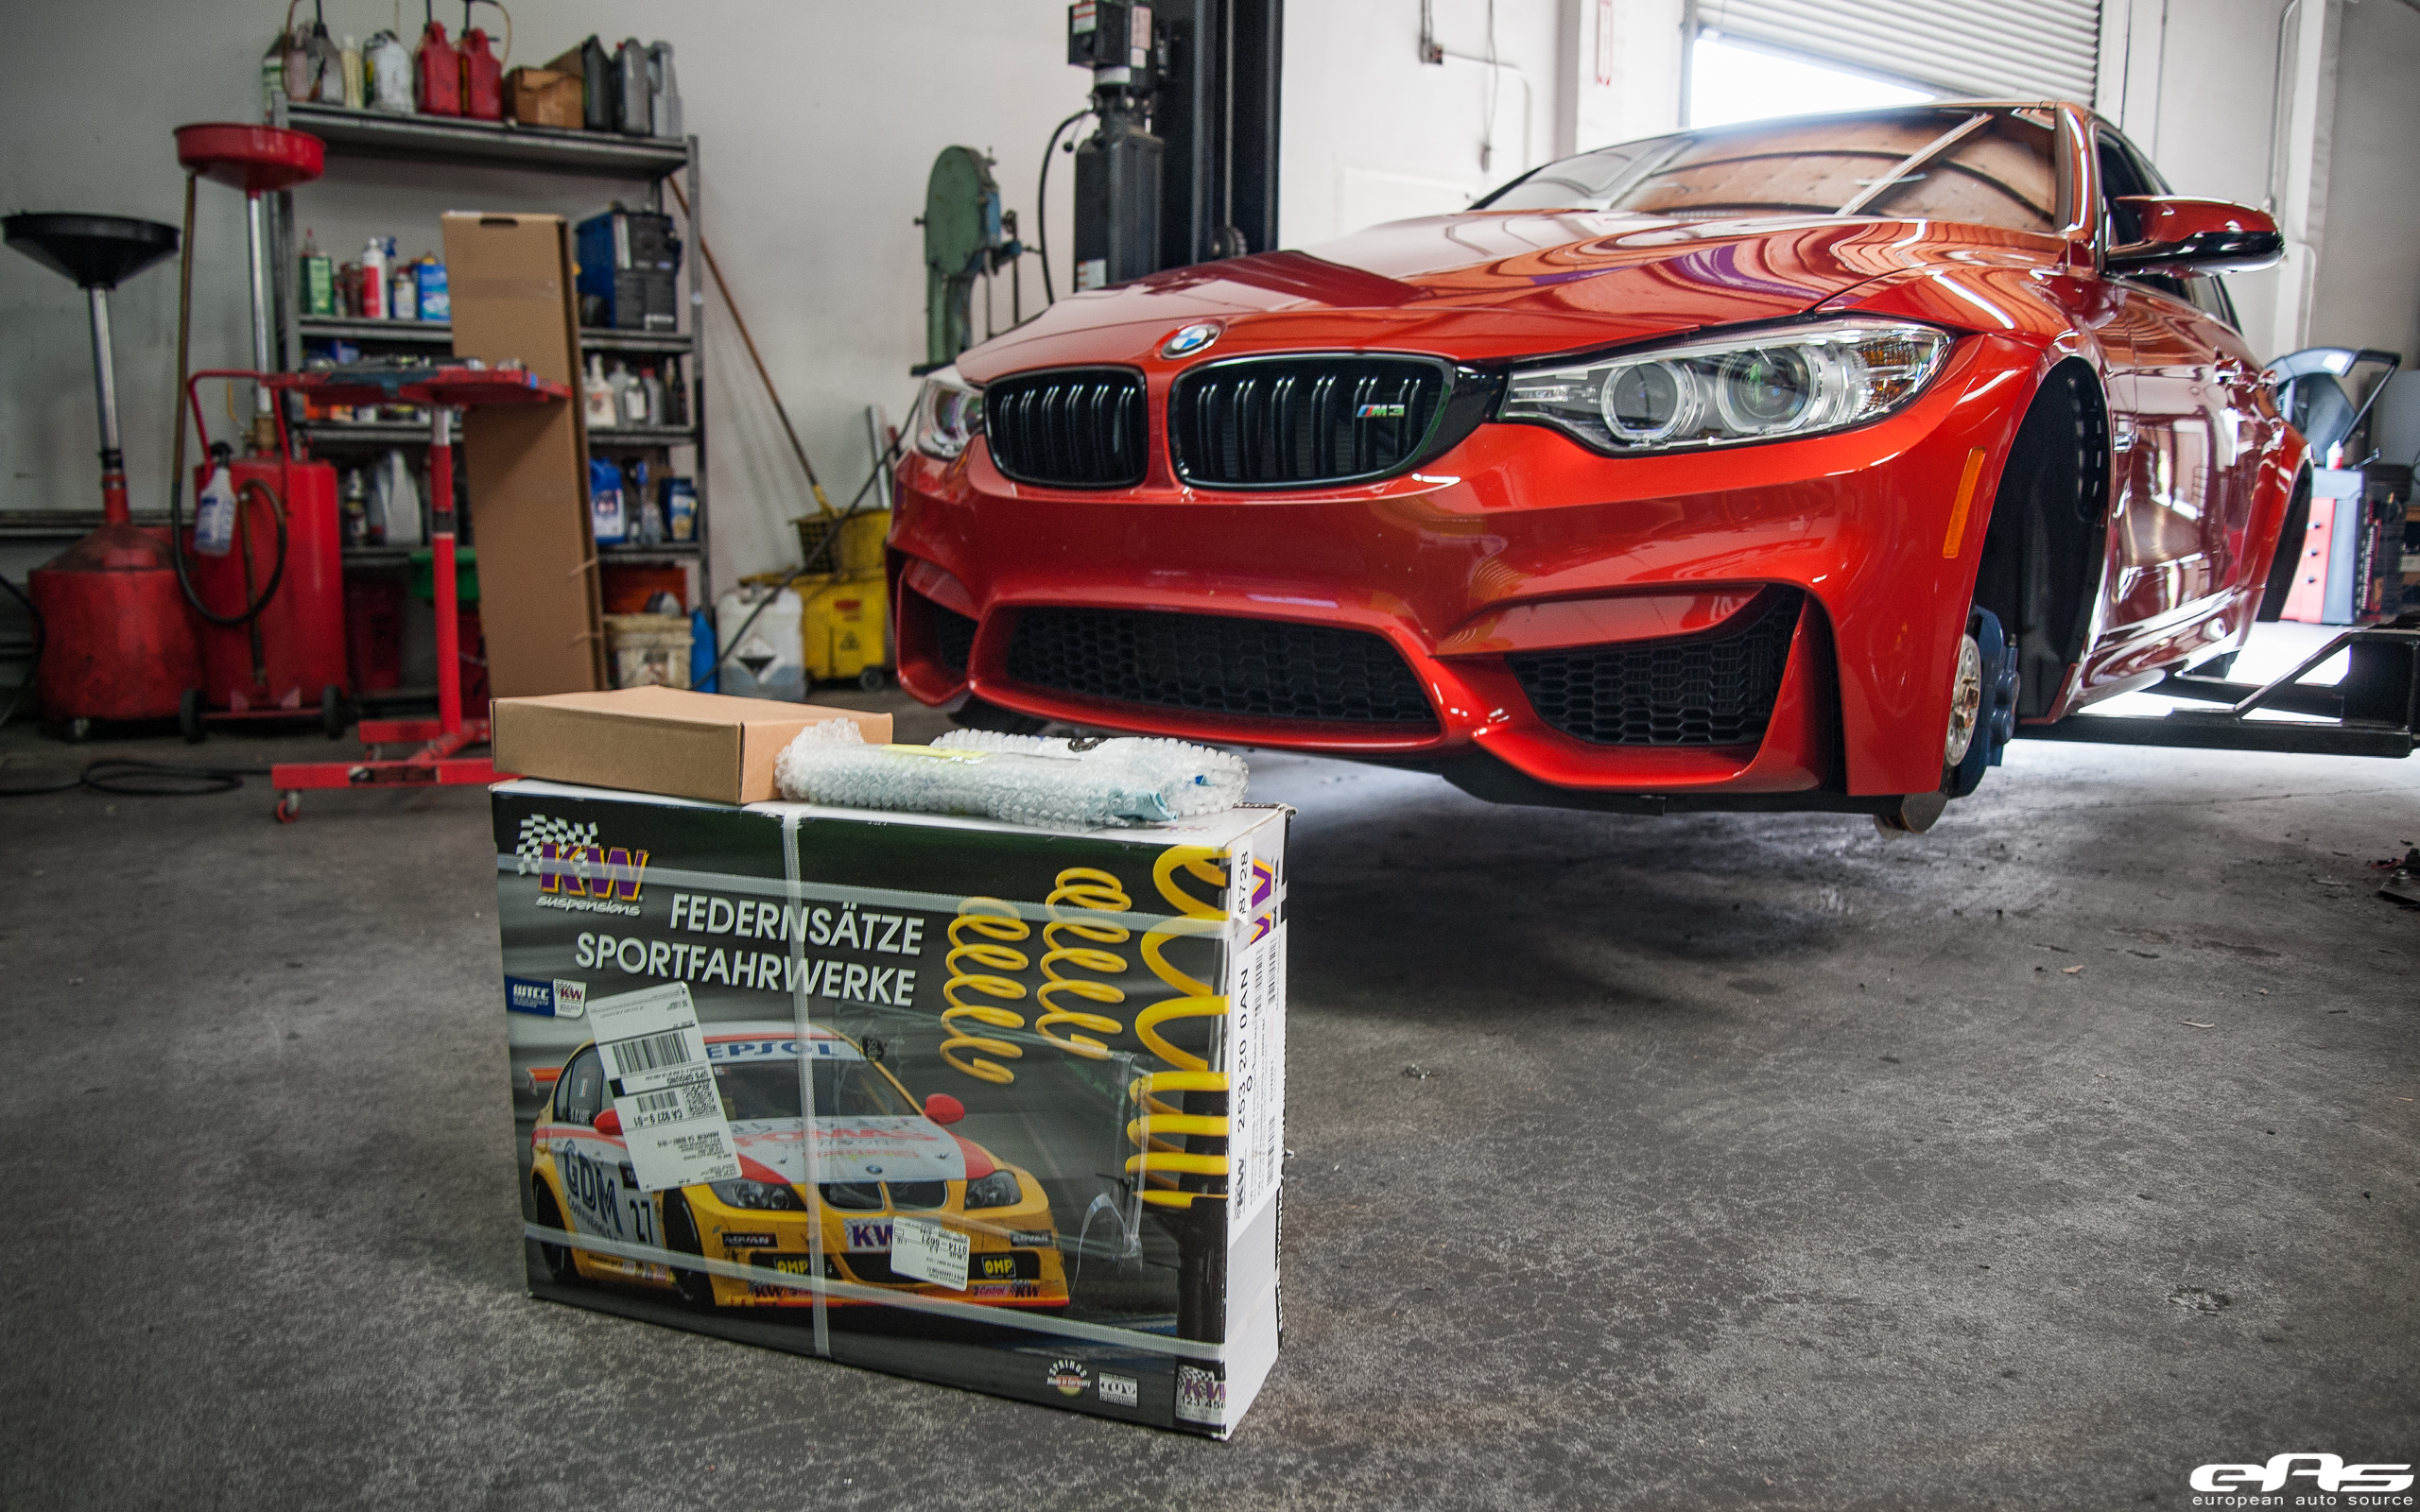 Sakhir Orange BMW M3 Project Image 1